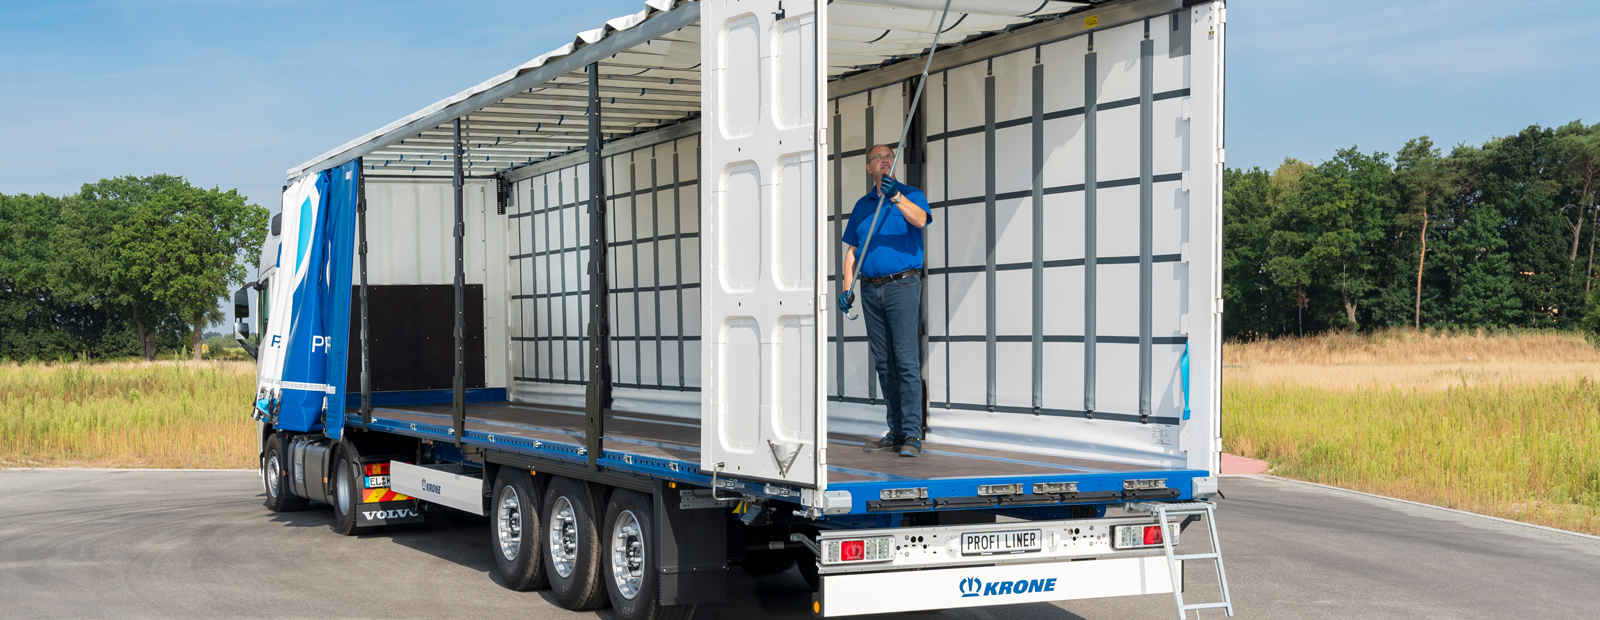 One for all: The Krone Profi Liner with Safe Curtain